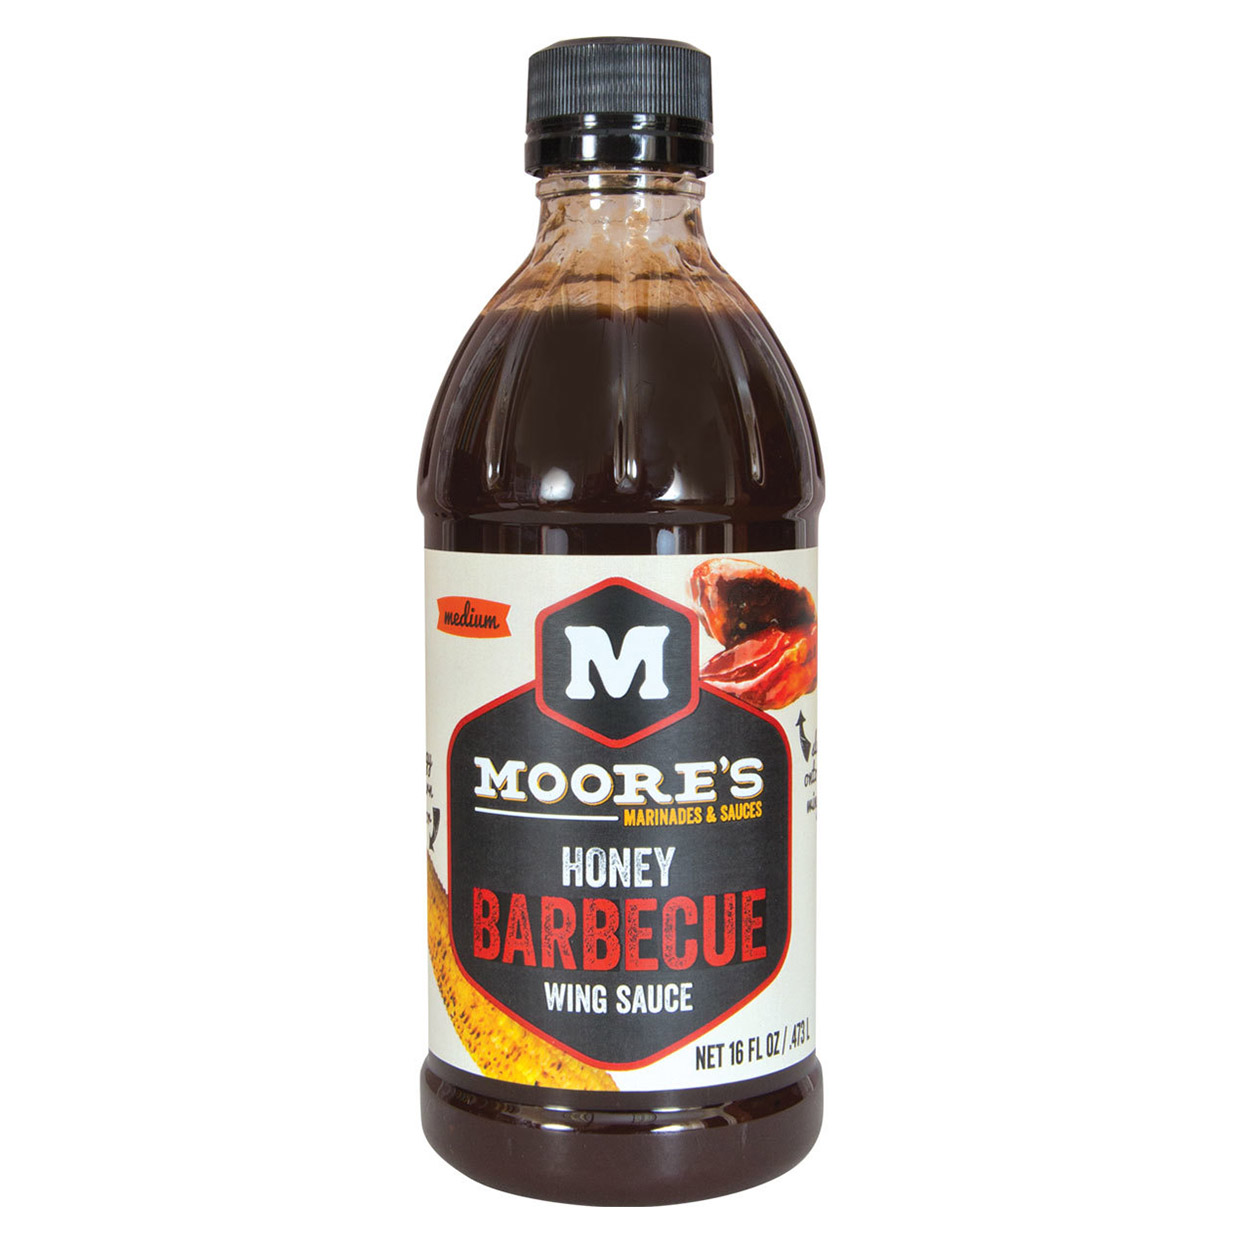 Moore's Honey Barbecue Wing Sauce